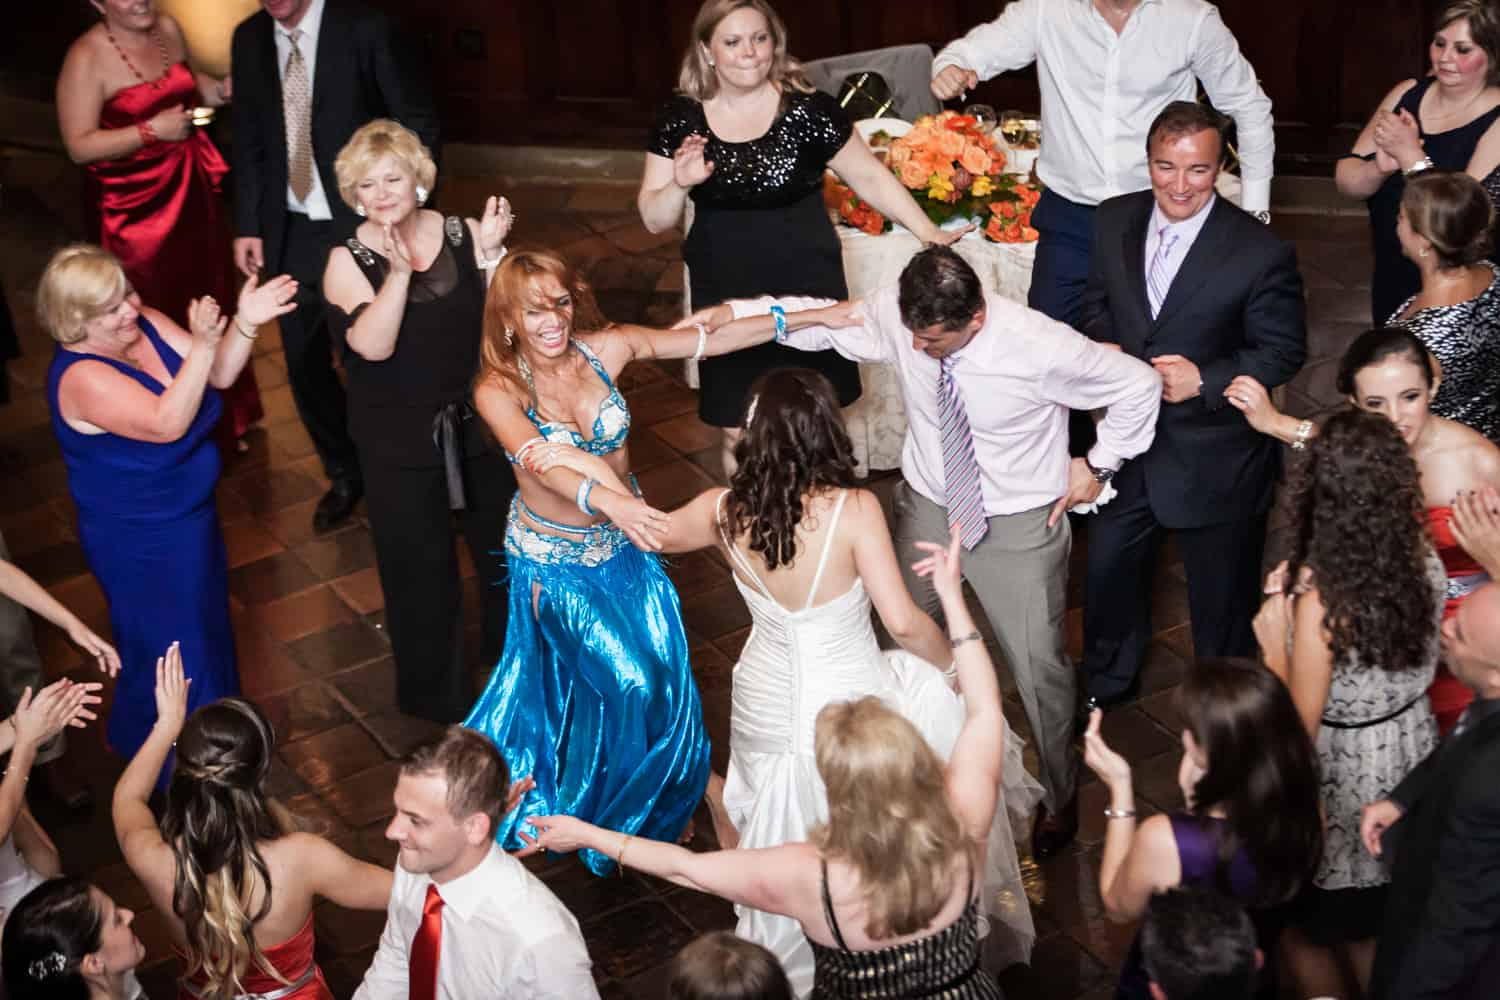 Guests dancing at a Harvard Club wedding